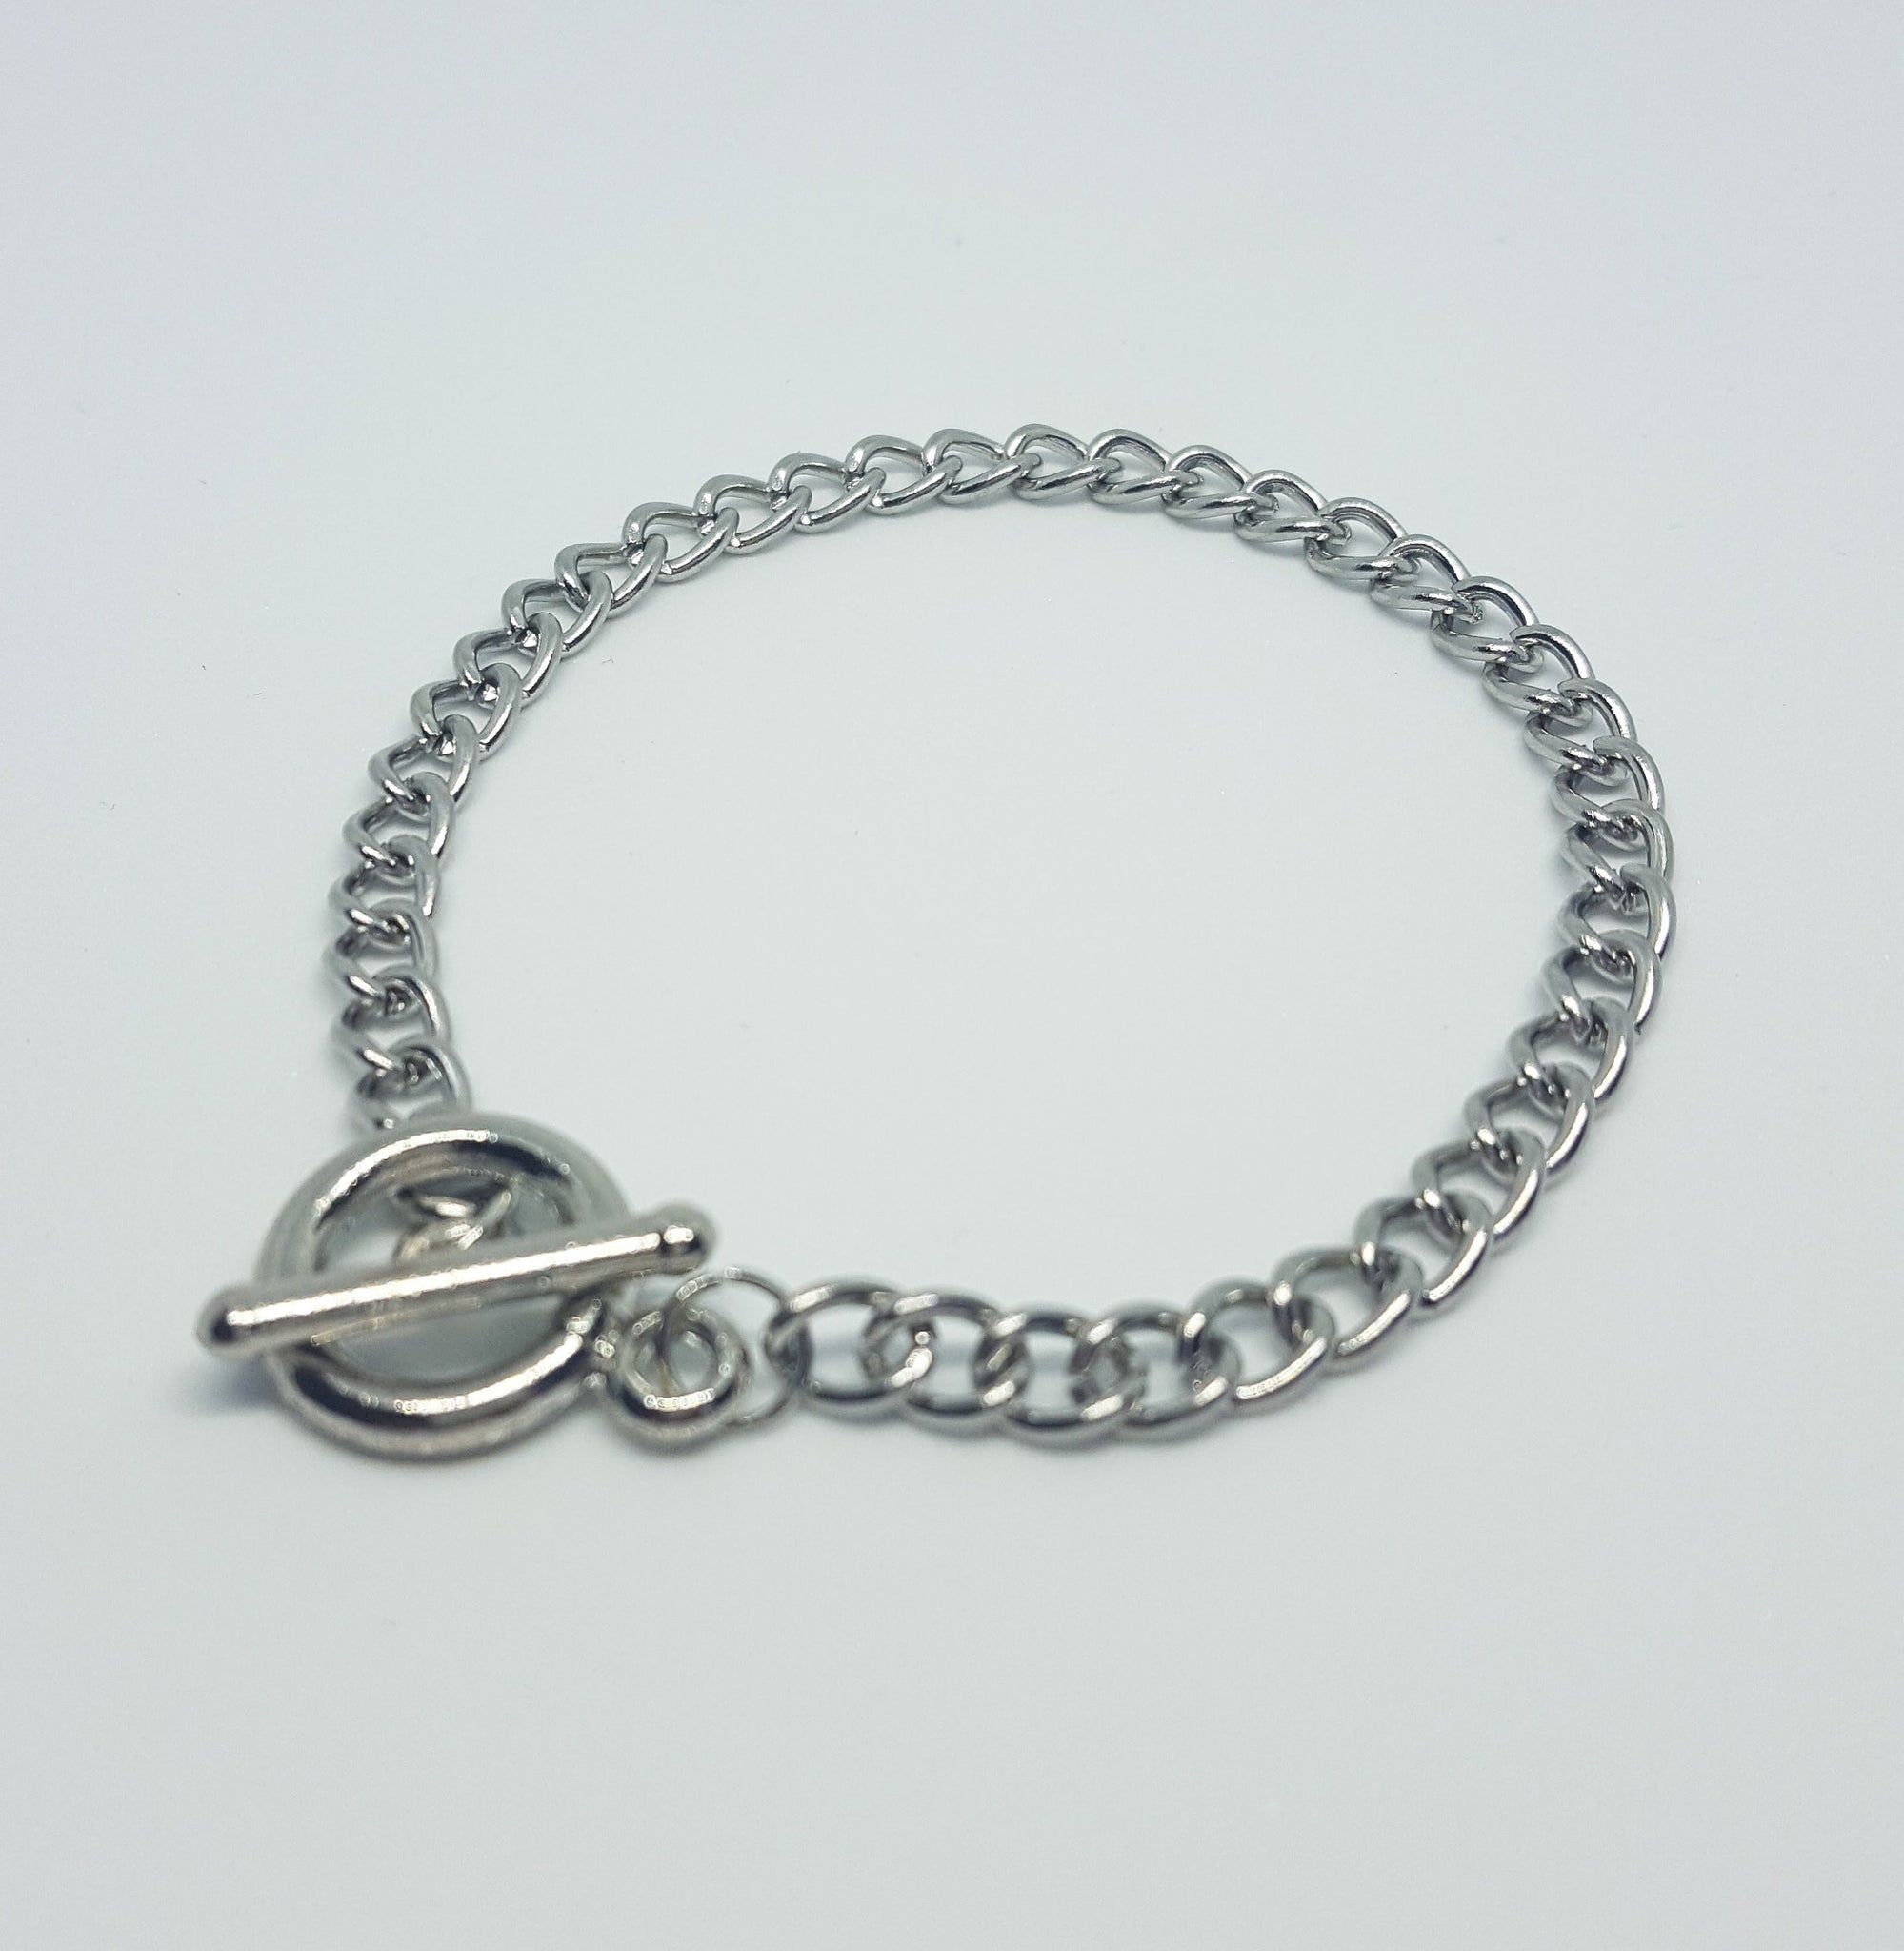 "Toggle Charm Bracelet, Zinc Alloy Metal, Link, Starter Bracelet, Fits up to 7.5"" Wrist"